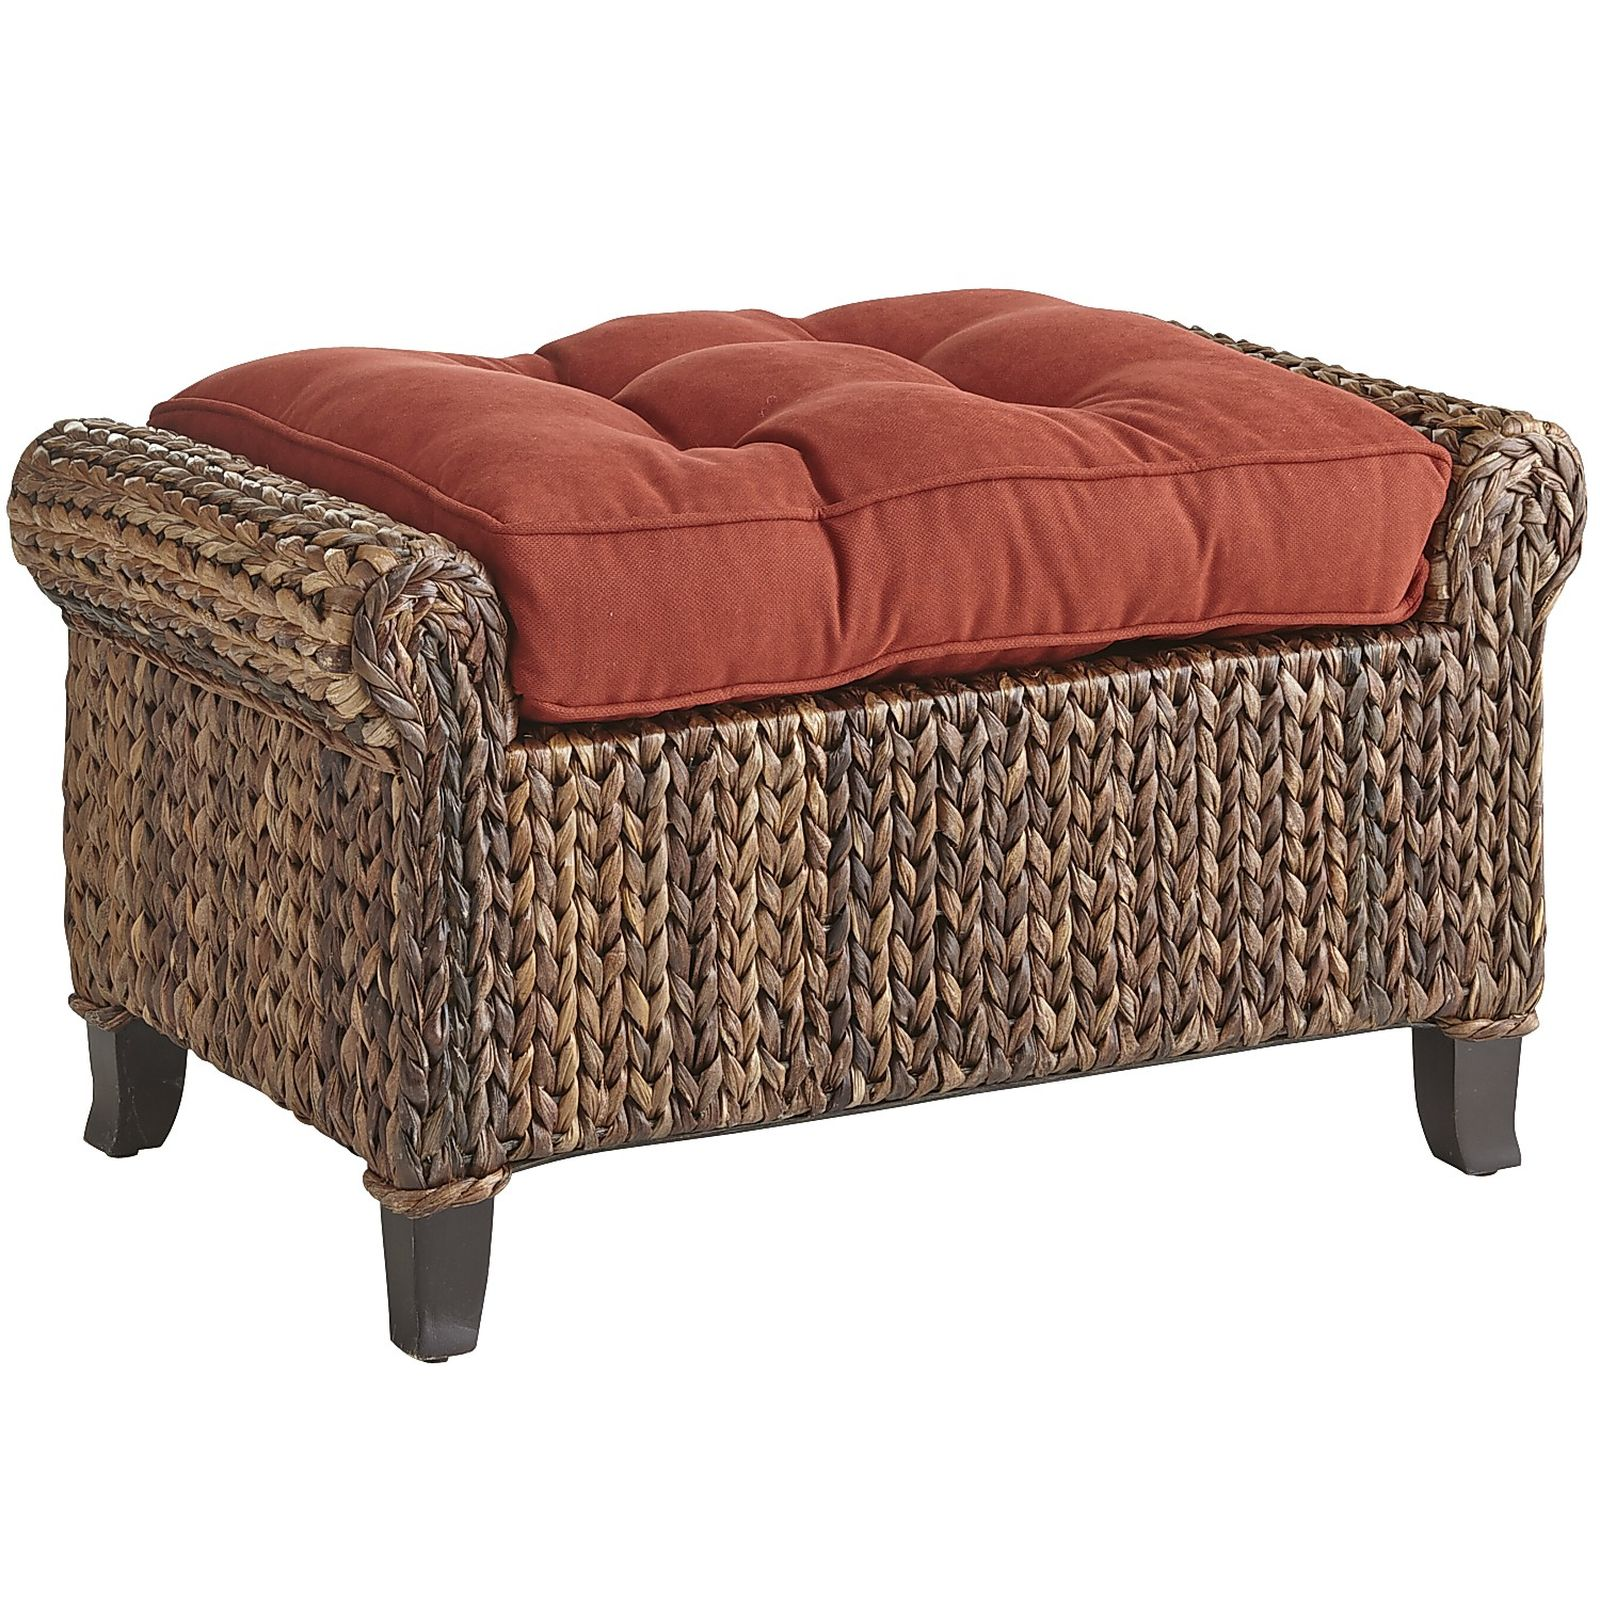 Pier One Rattan Furniture | Pier One Wicker Furniture | Pier One Outdoor Tables